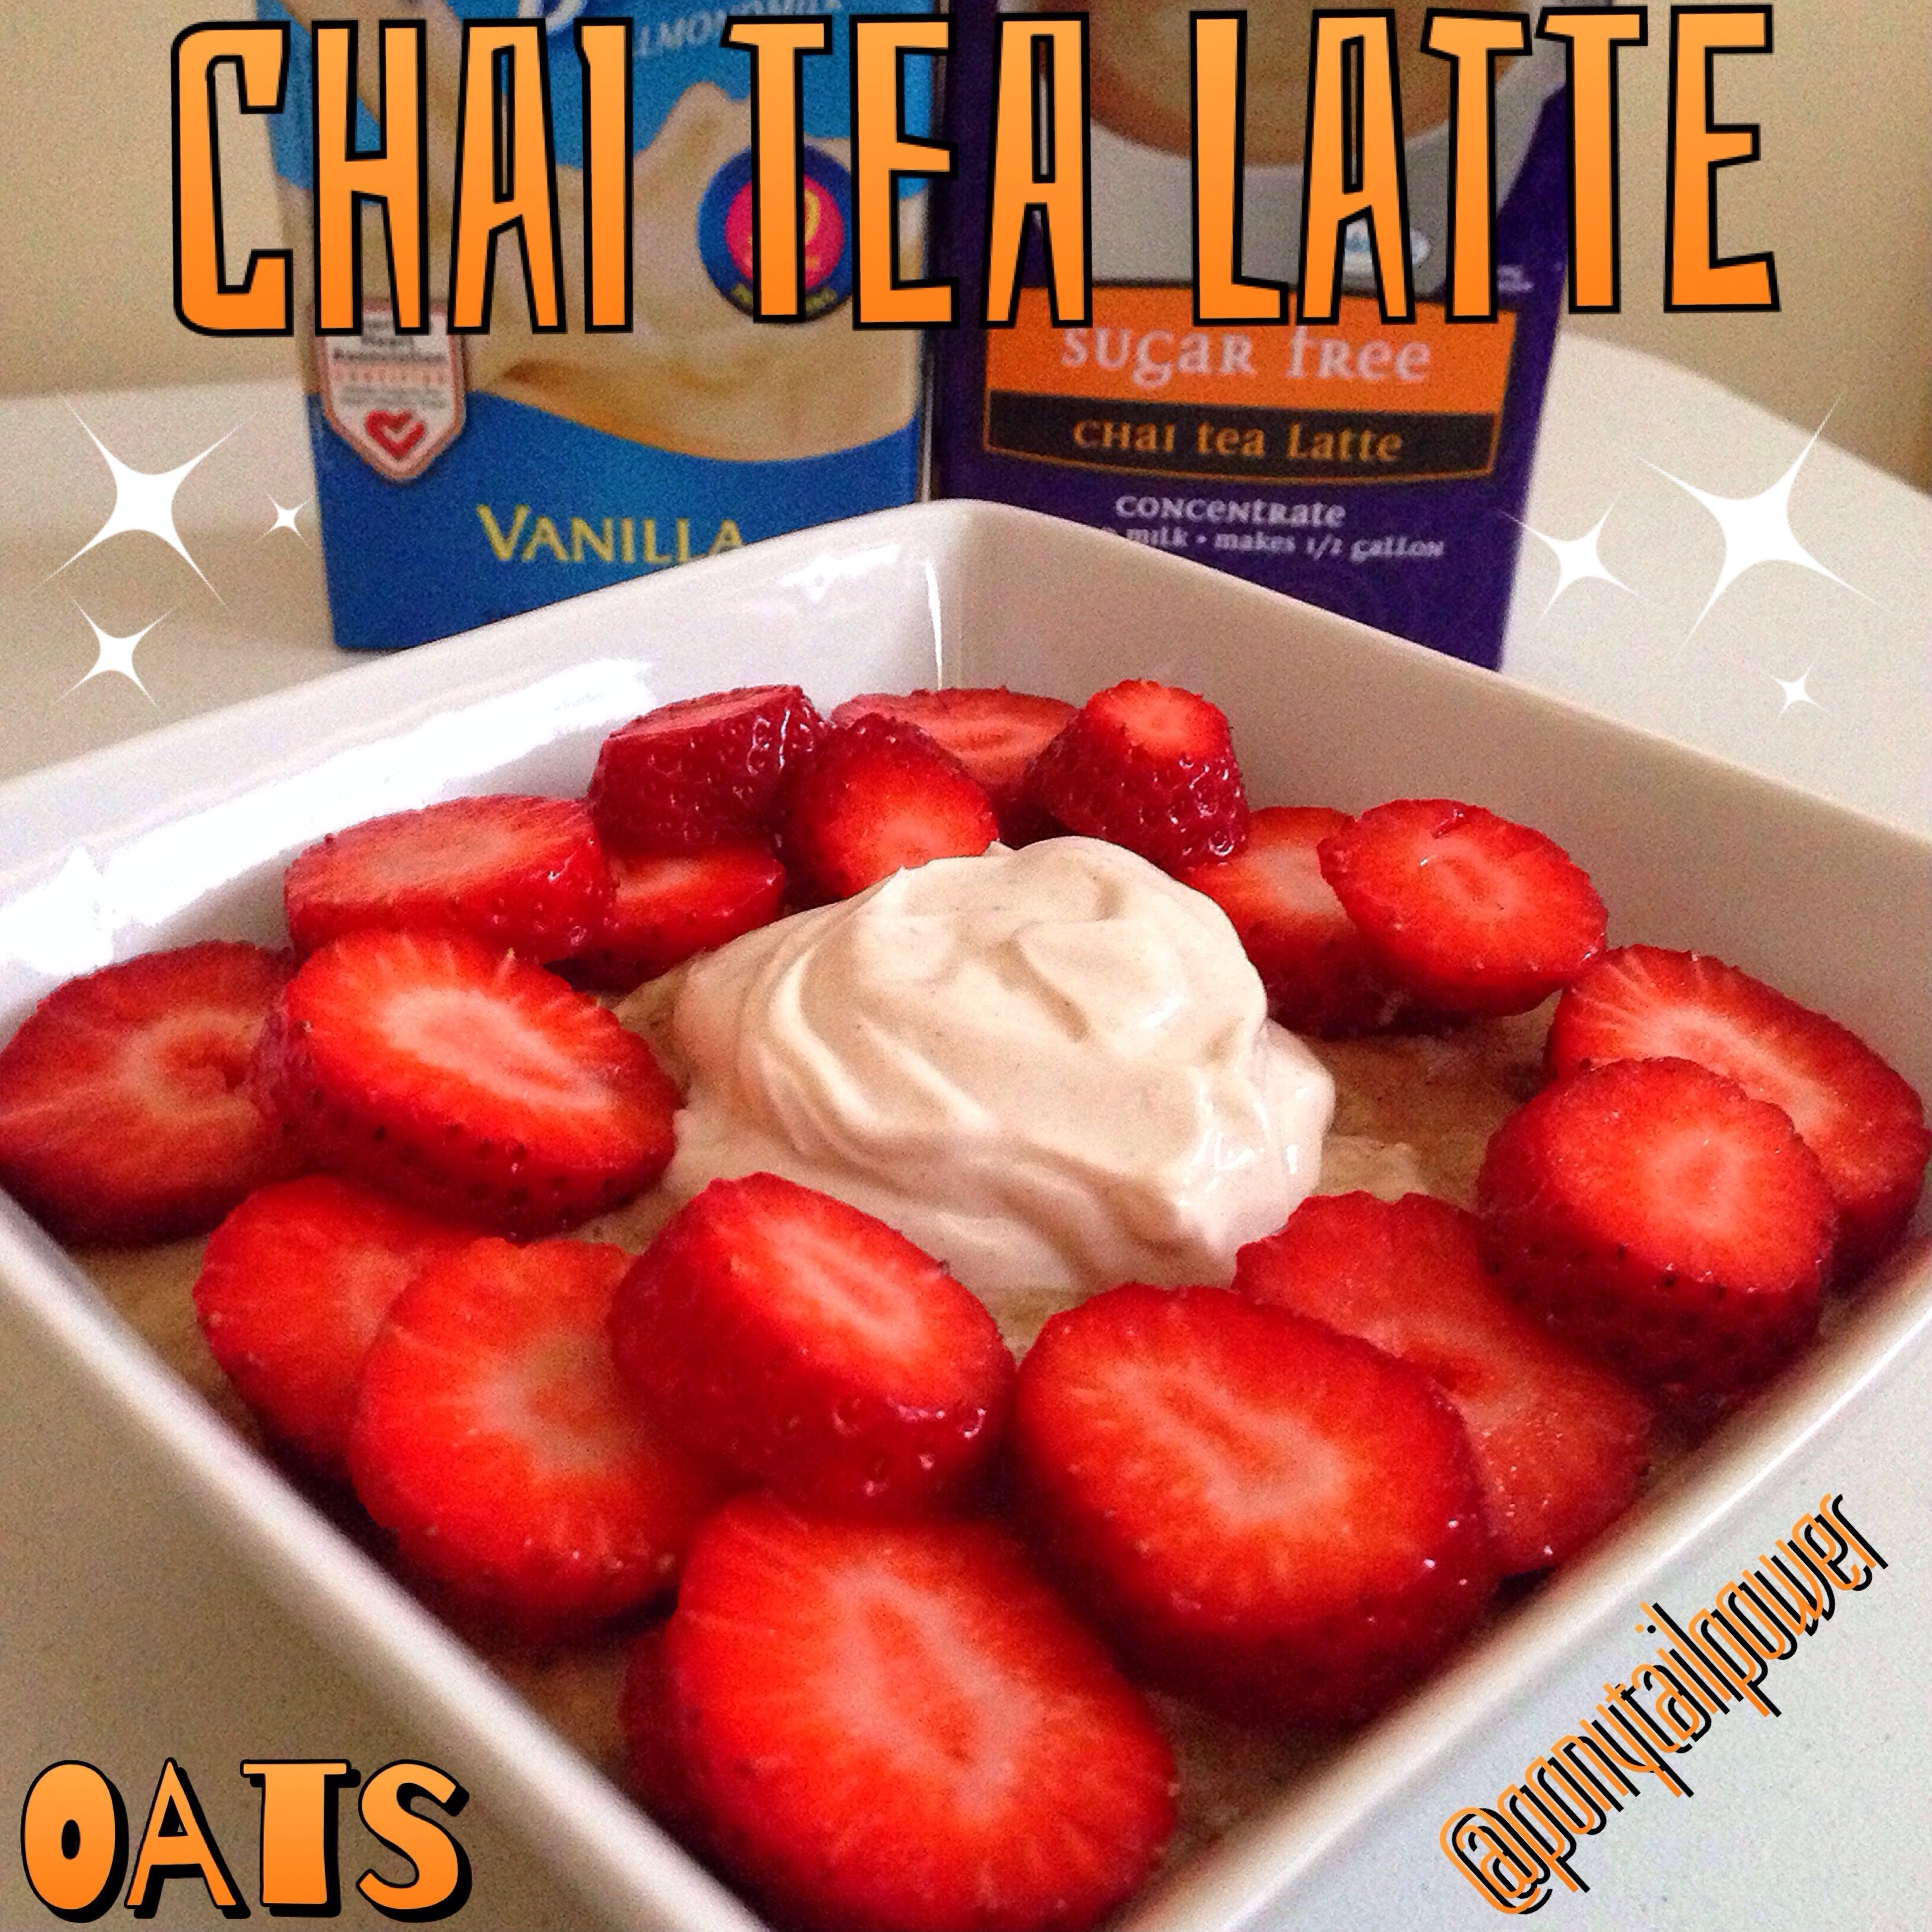 ☕️1/2 cup oats ☕️1/2 cup sugar free #OregonChai latte tea  ☕️1/2 cup unsweetened vanilla almond milk  ☕️Organic Saigon cinnamon to taste  ☕️Microwave for 3:00 ☕️Whisk in 1/2 cup liquid egg whites ☕️Microwave for :30 ☕️Whisk and Microwave final :30 ☕️Top with vanilla creme  ✴️1/4 cup  Greek yogurt  ✴️1 packet stevia  ✴️Chai spices to taste {{cardamomcinnamonall spicenutmeggingerclovesblack pepper (I didnt use)...you can also use apple pie spice!